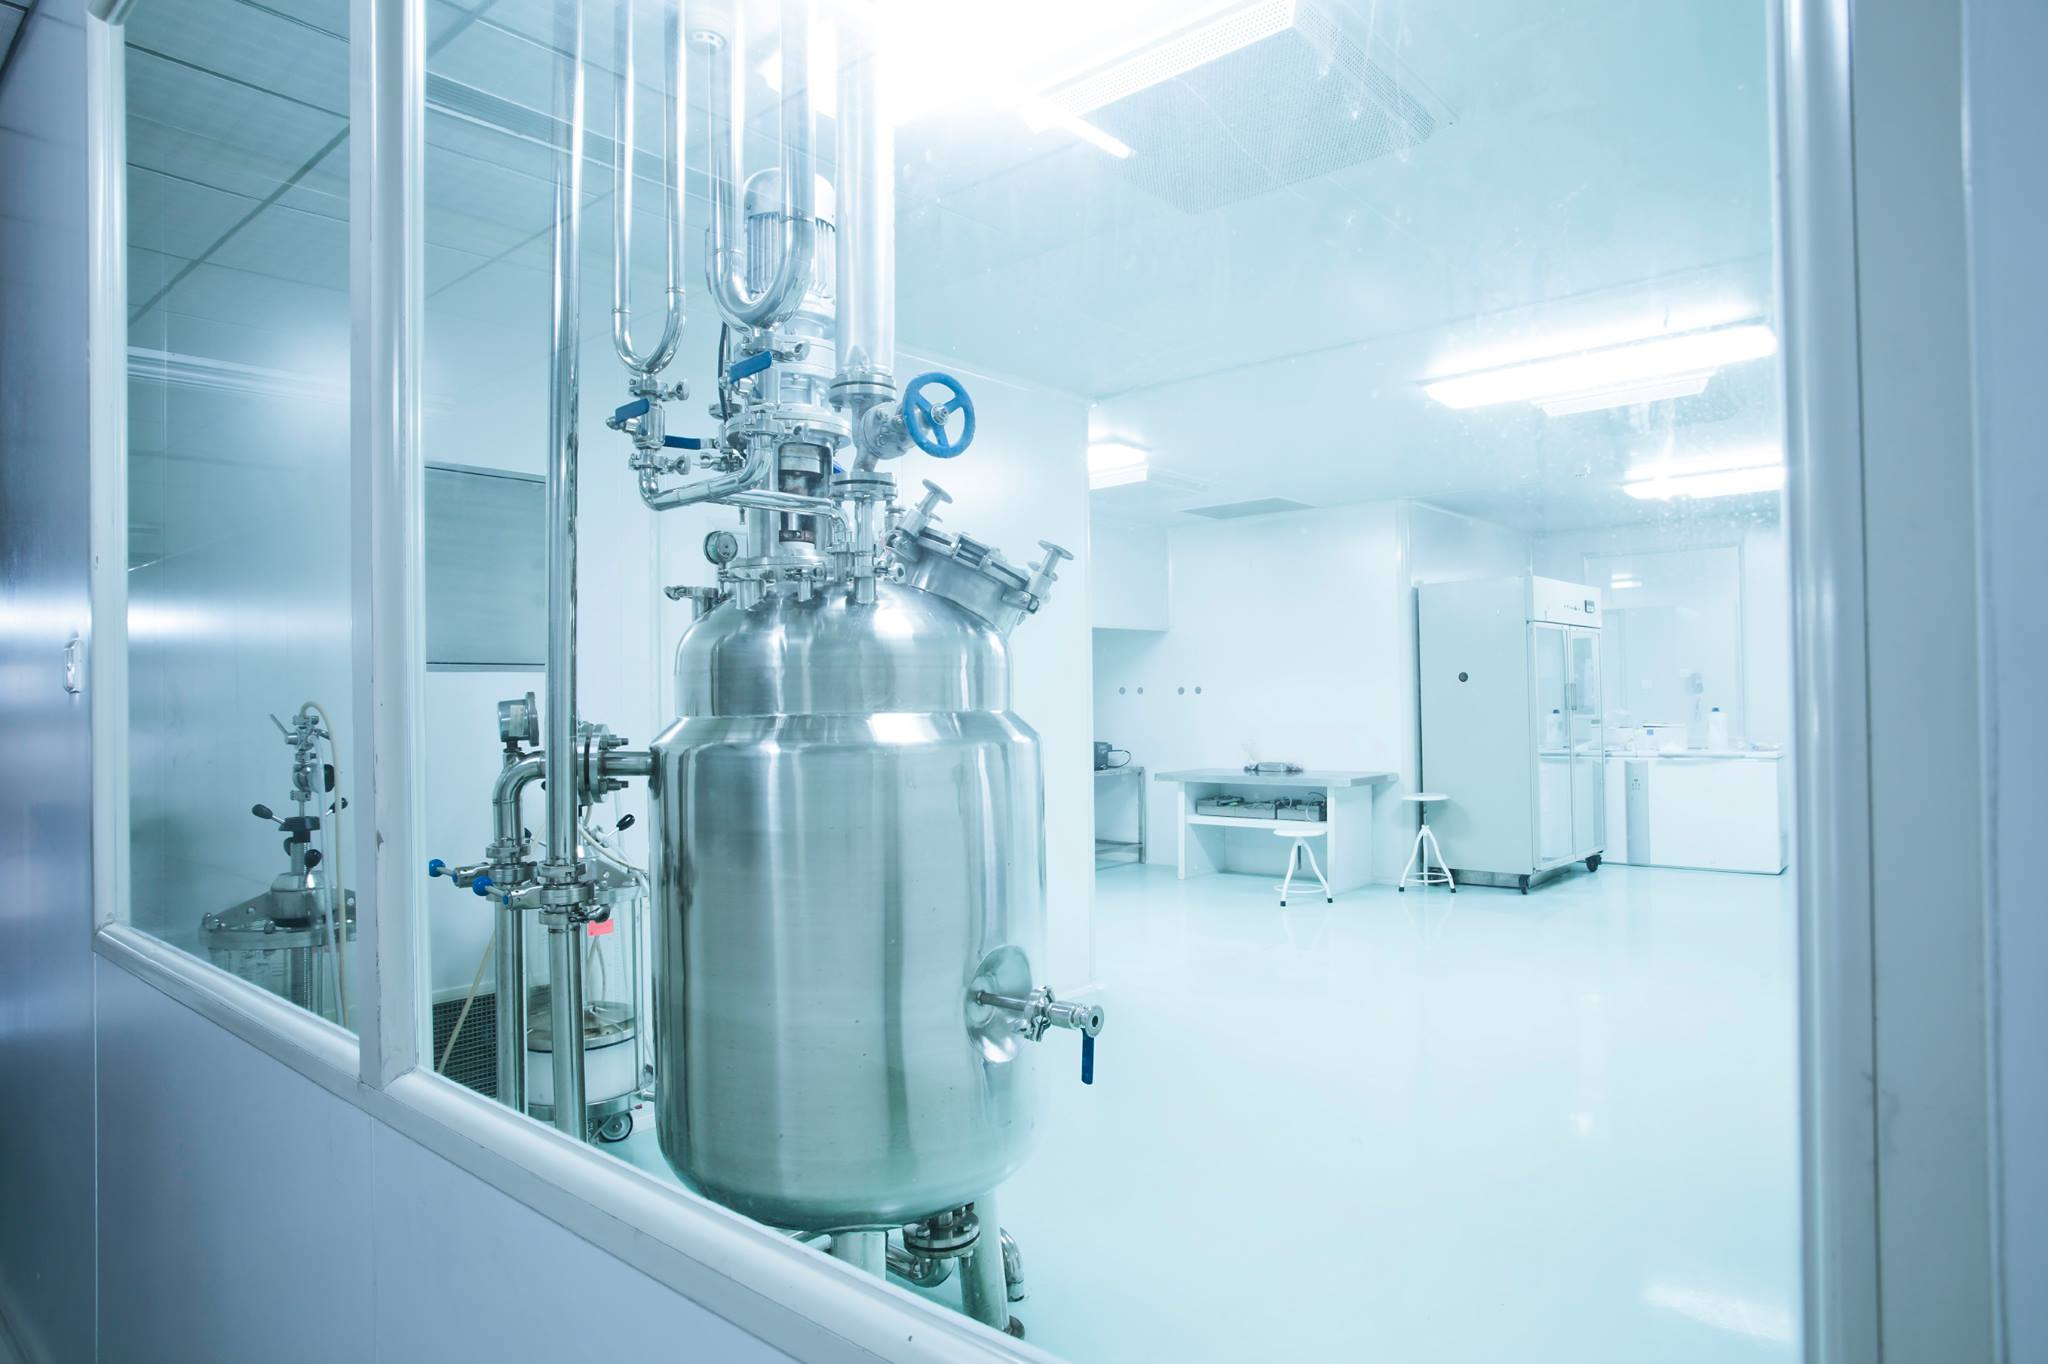 Bespoke custom stainless steel vessels and pharmaceutical process equipment